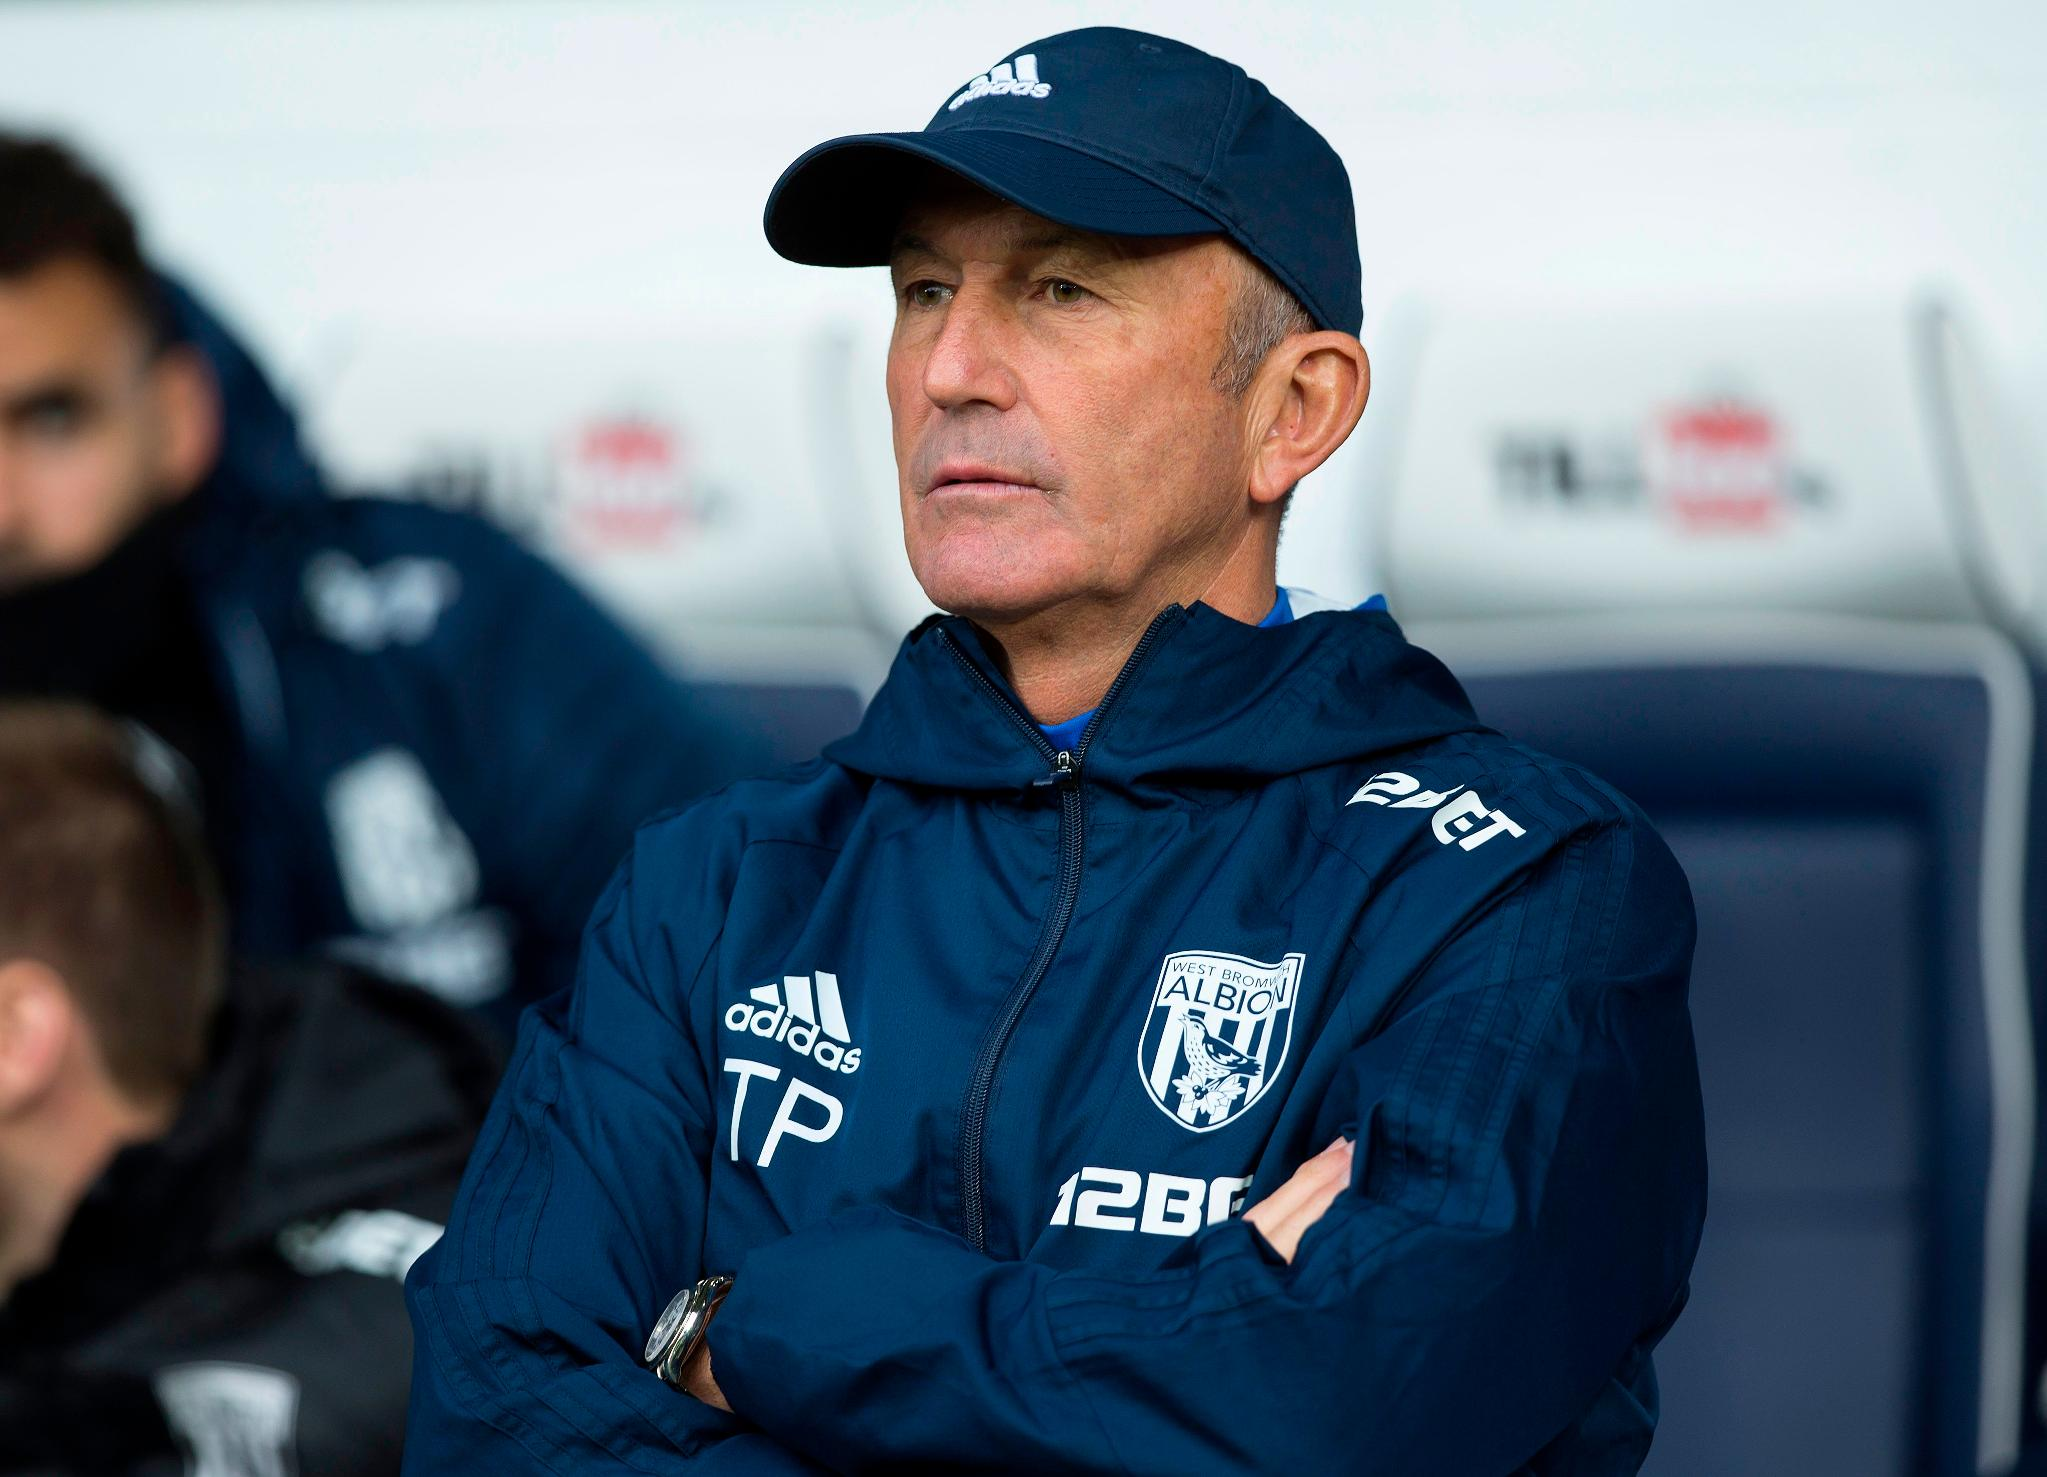 West Brom have announced the departure of Tony Pulis  More ➡️ https://t.co/WVqniOknbR https://t.co/iTM3UPO3hF